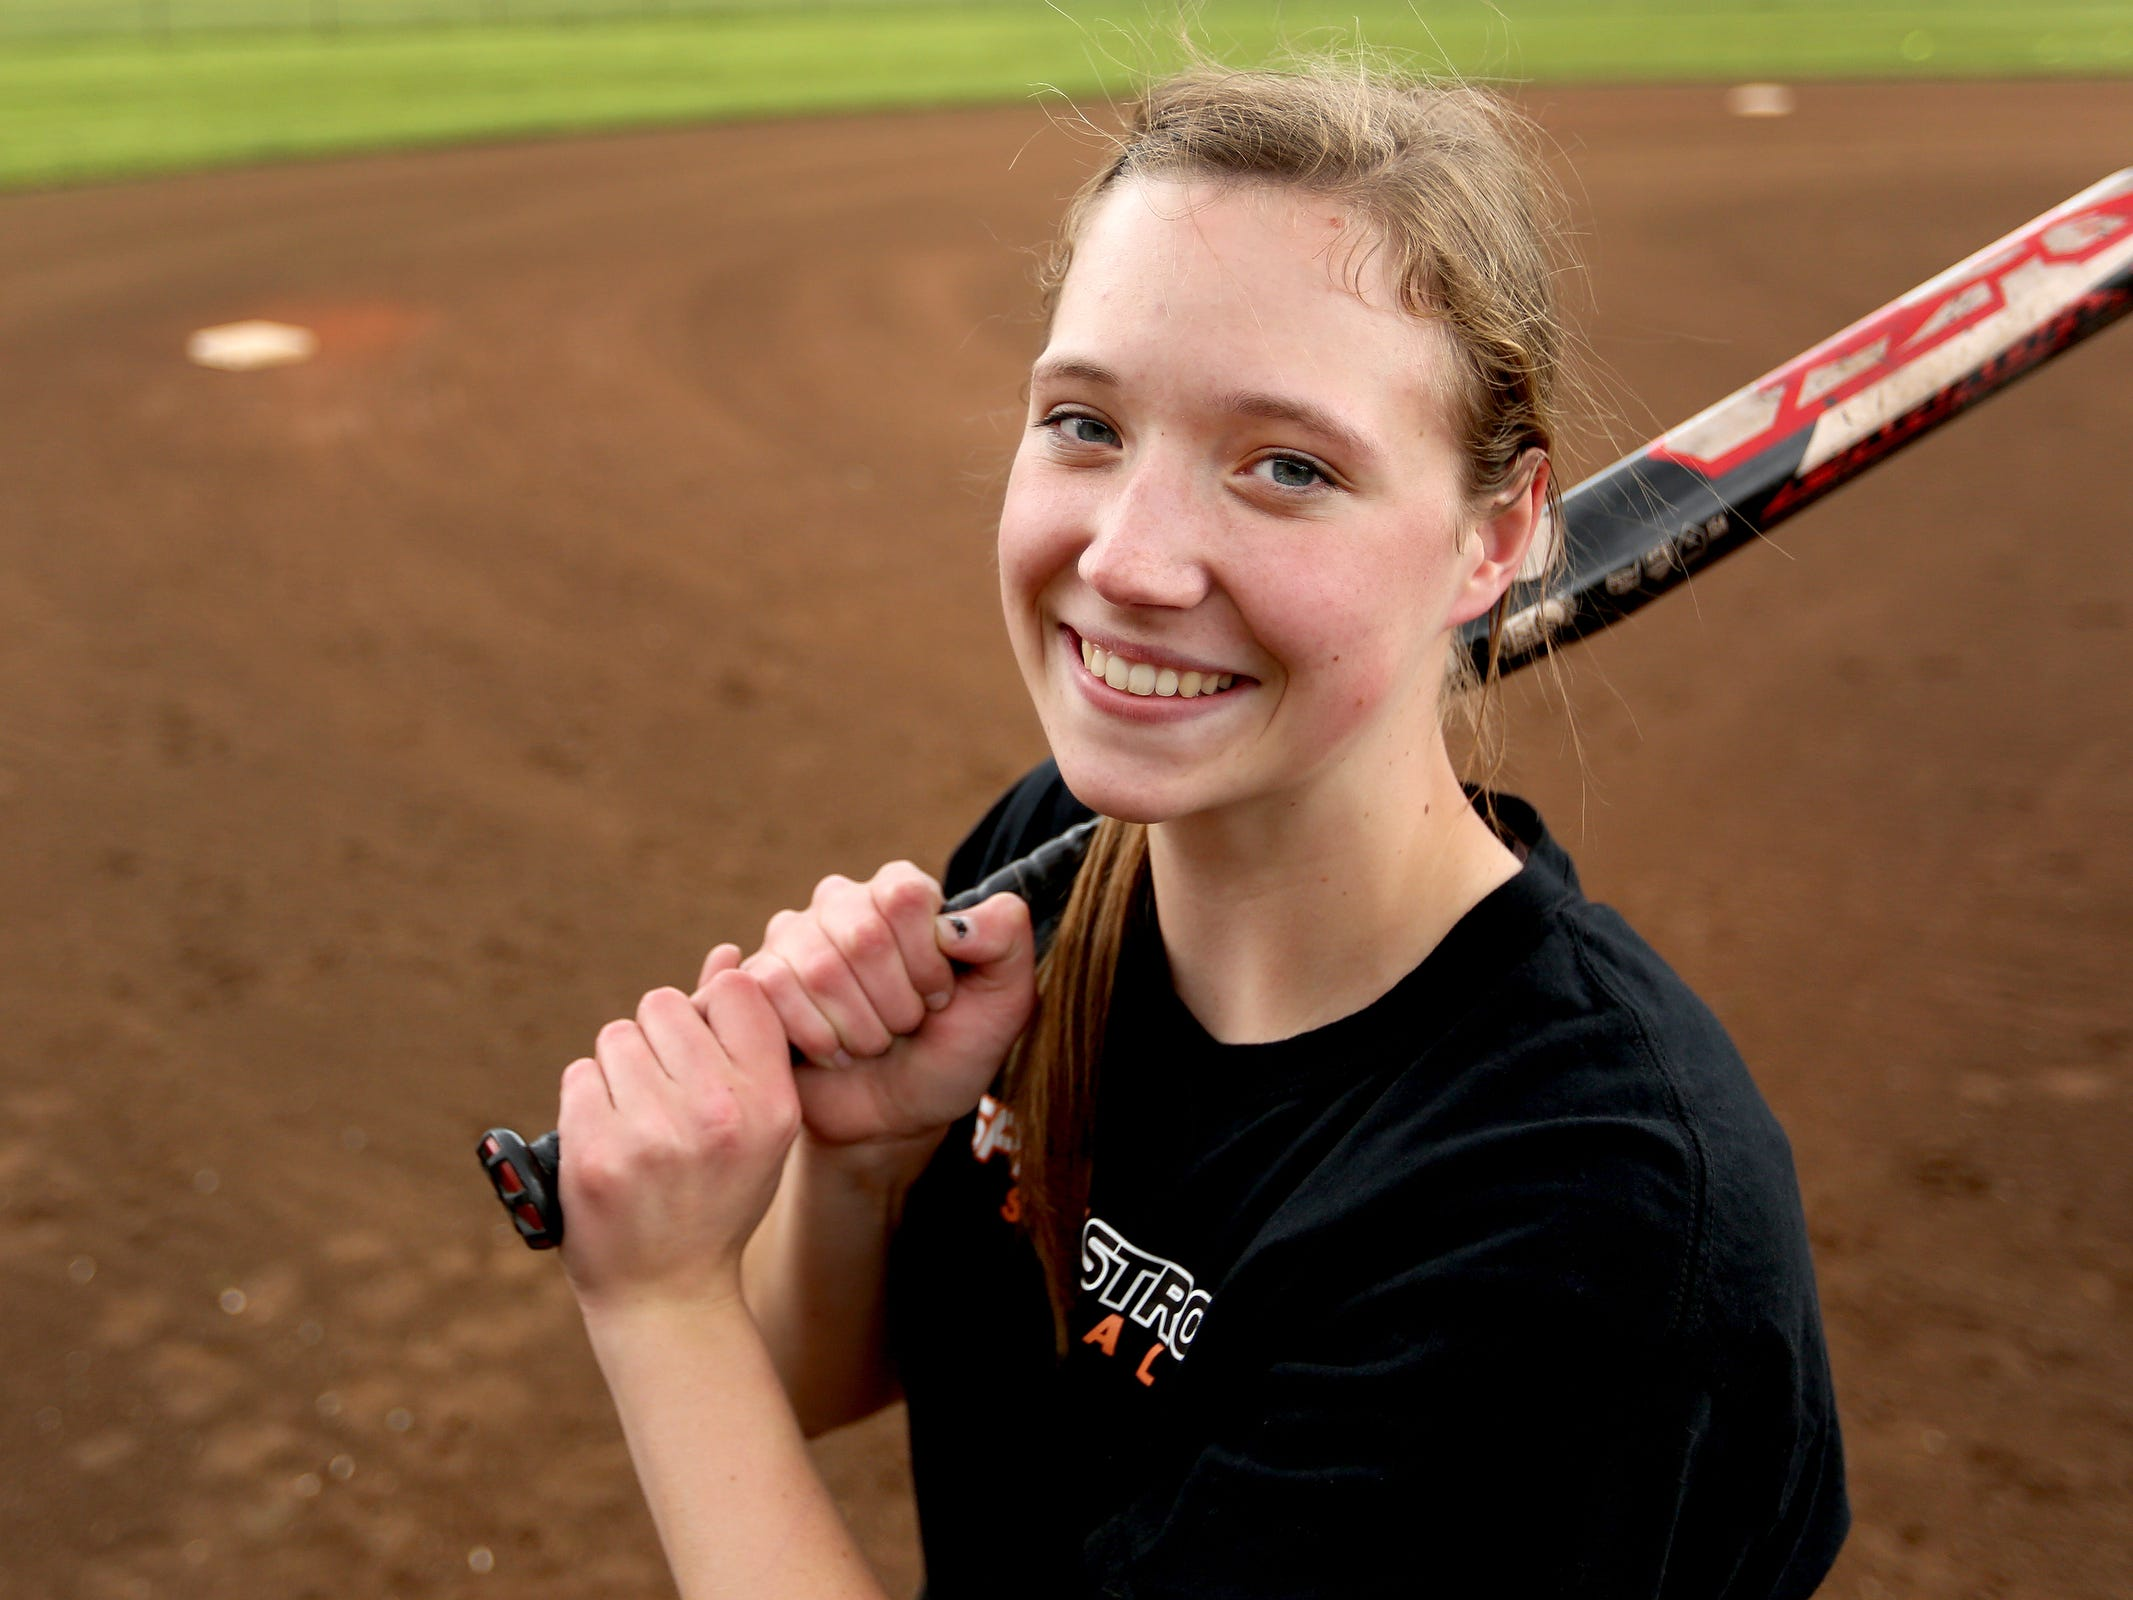 Senior catcher Jessie Isham at Sprague High School on Monday, April 6, 2015. She has committed to play softball for Minnesota.